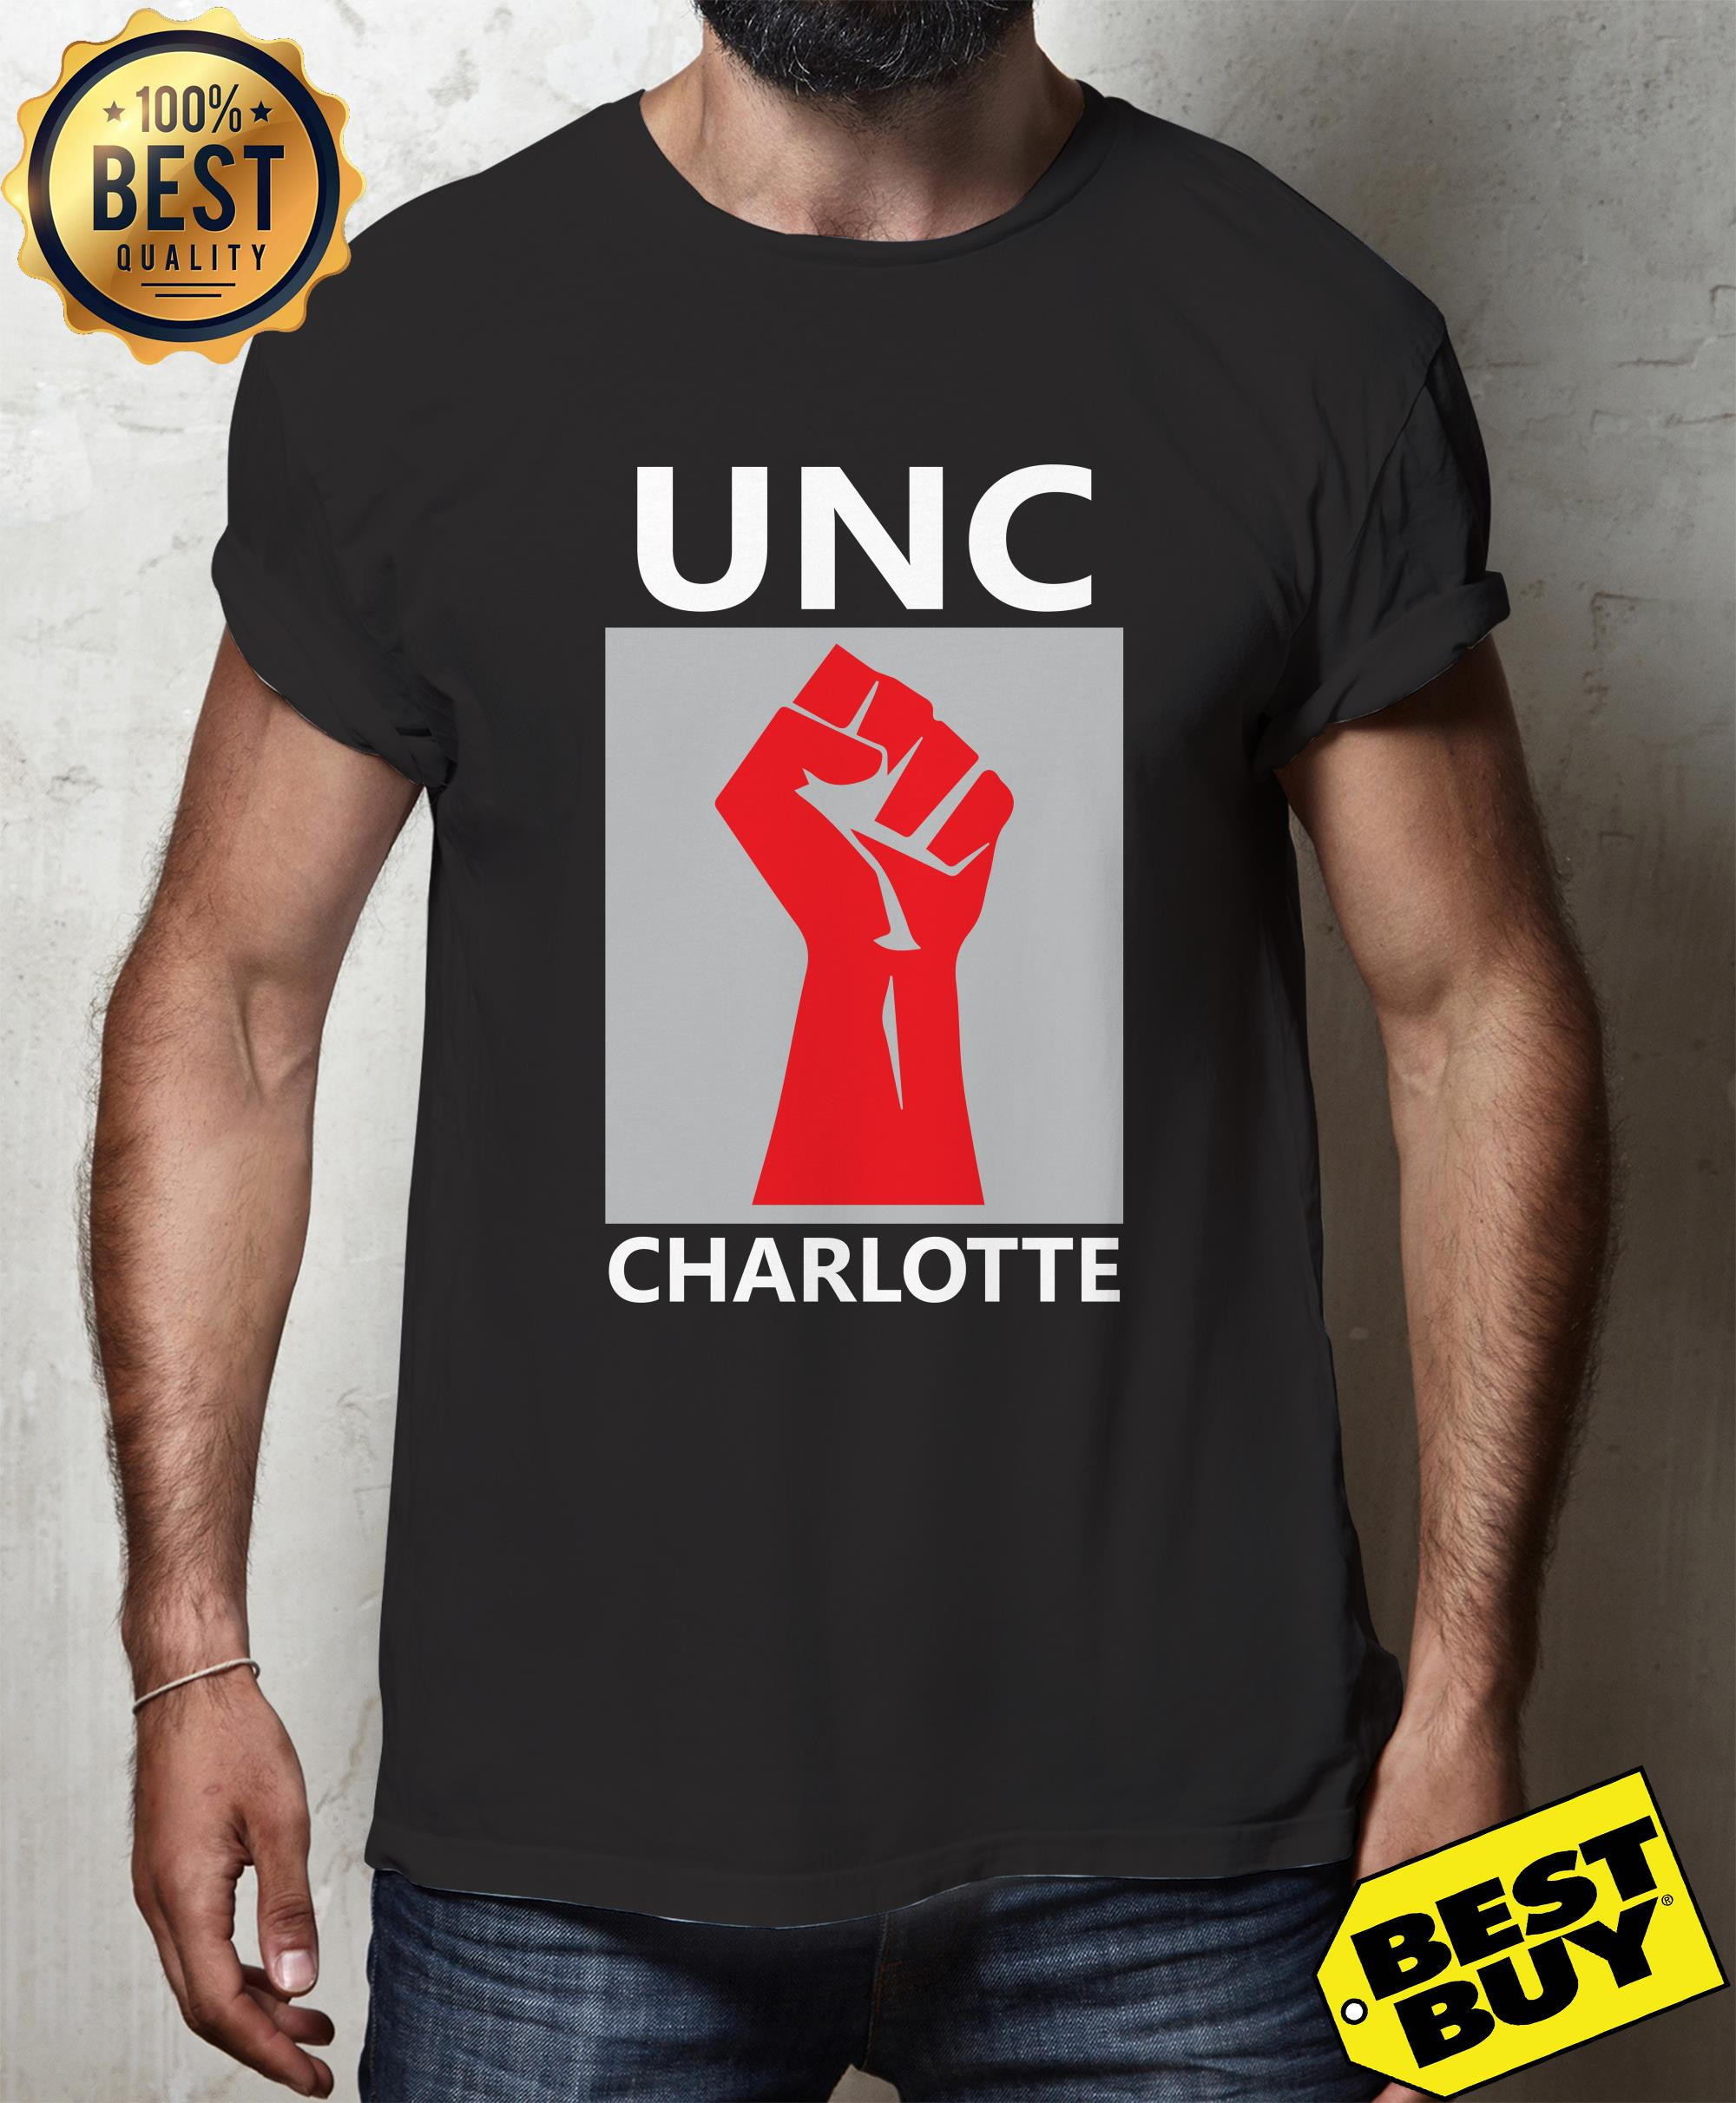 Official Strong UNC Charlotte Shirt